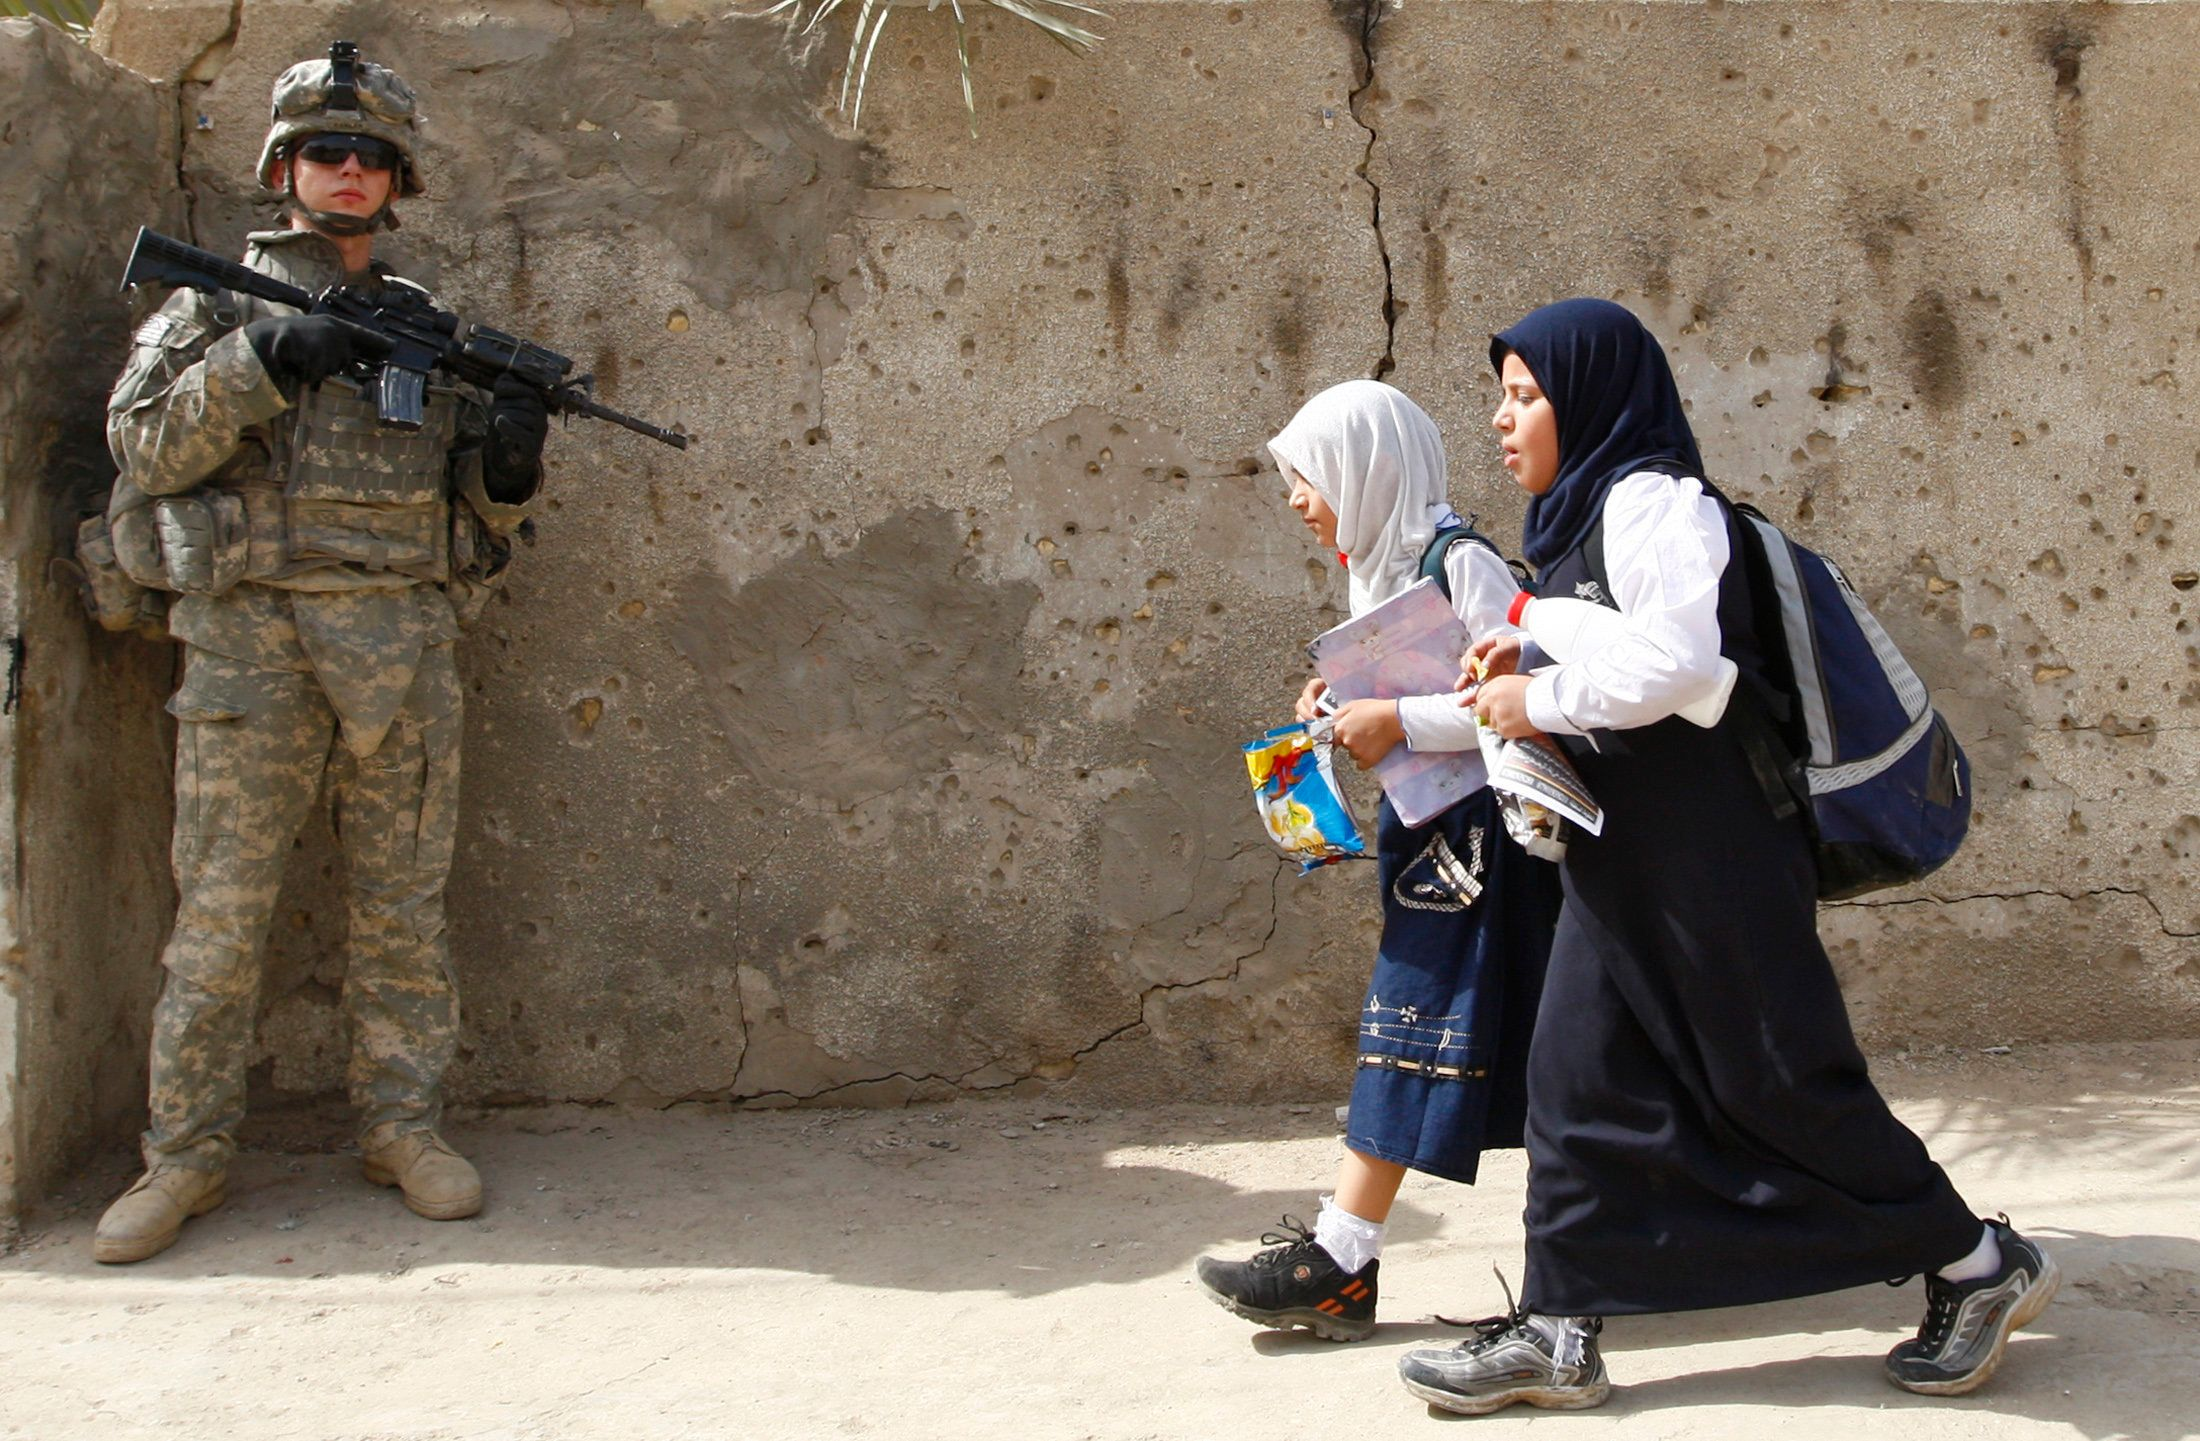 Students walk past a U.S. soldier in Baghdad's Ameen district on October 14, 2008.